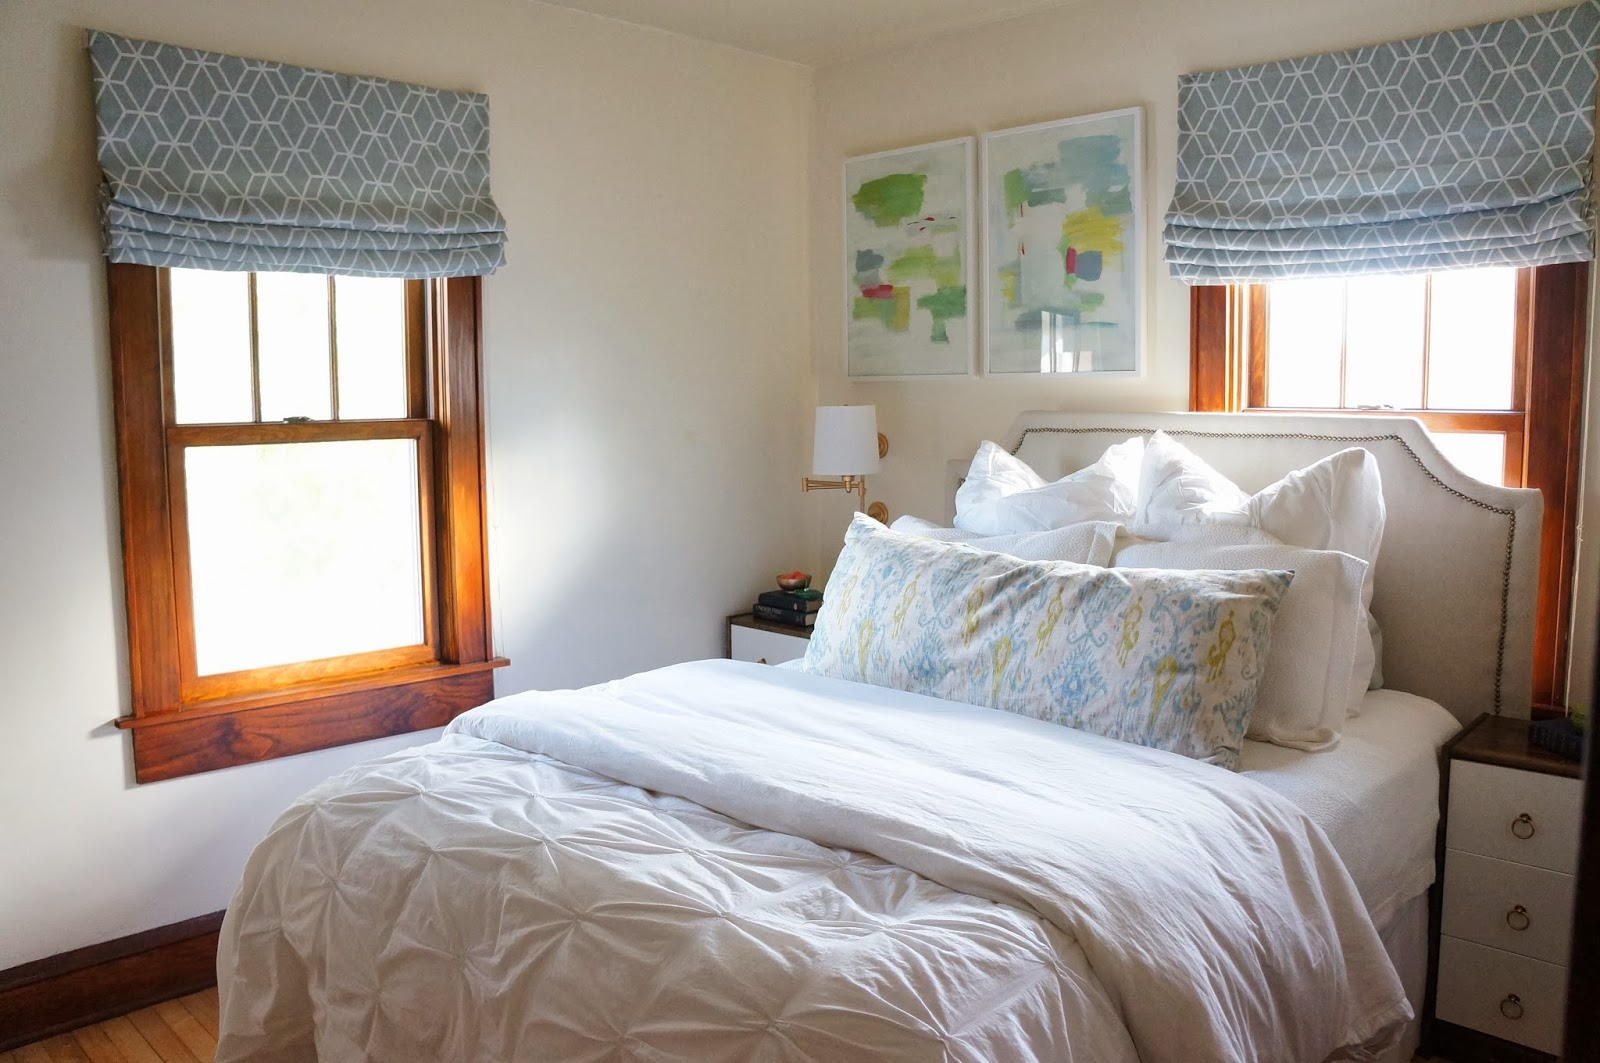 Light and Bright Bedroom Off Centered Window Over Bed